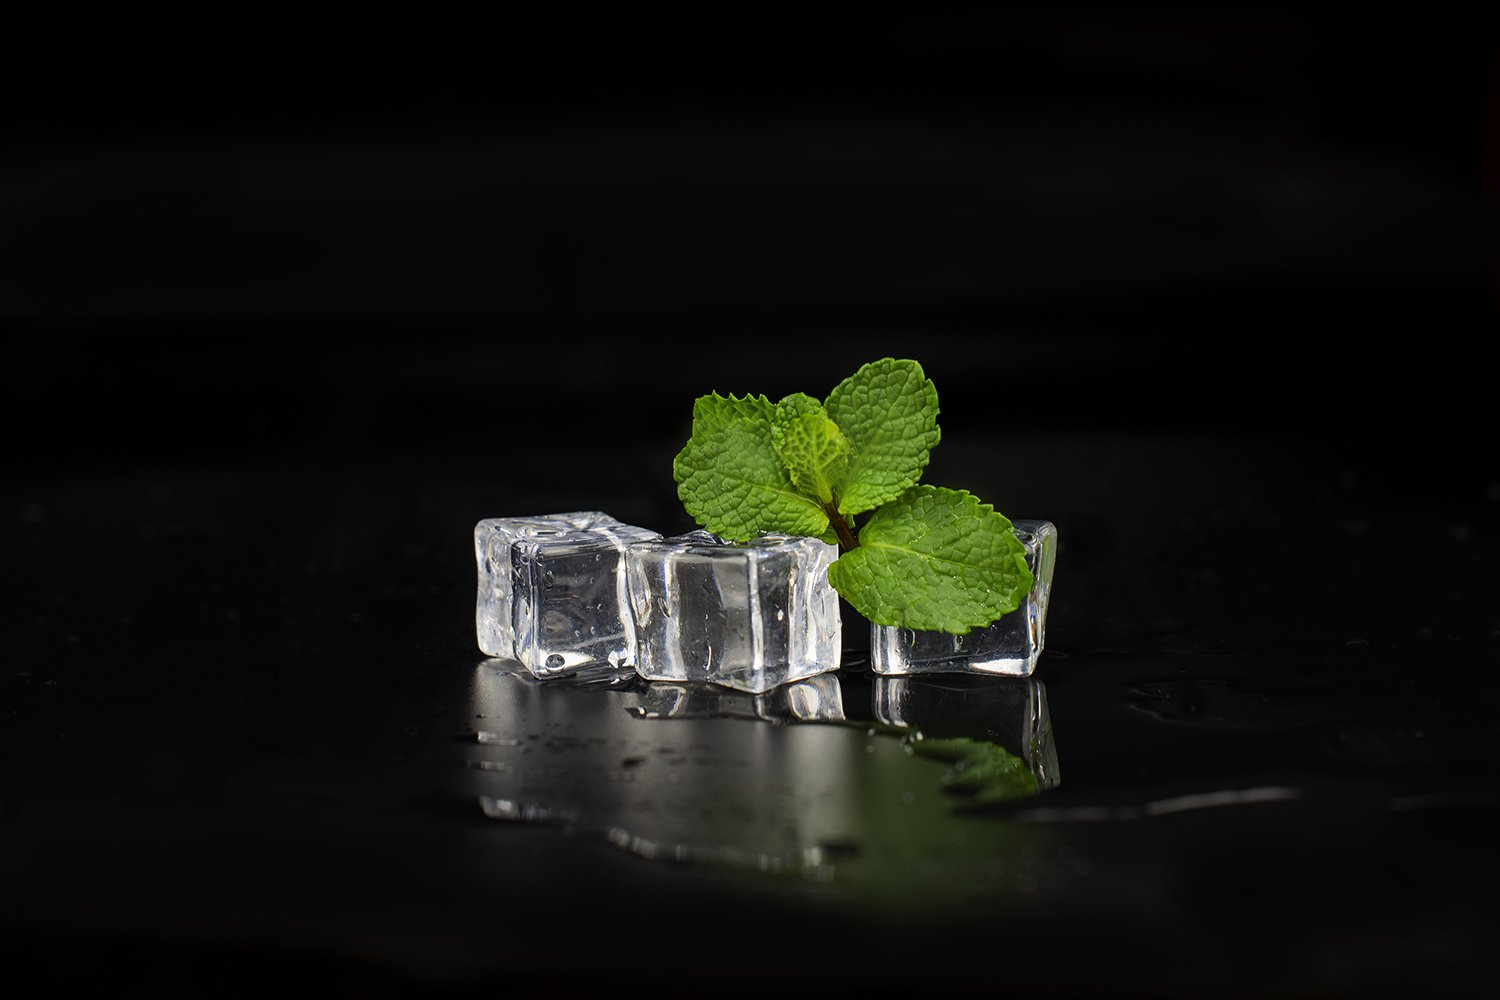 mint leaf with ice cubes with drops close-up example image 1